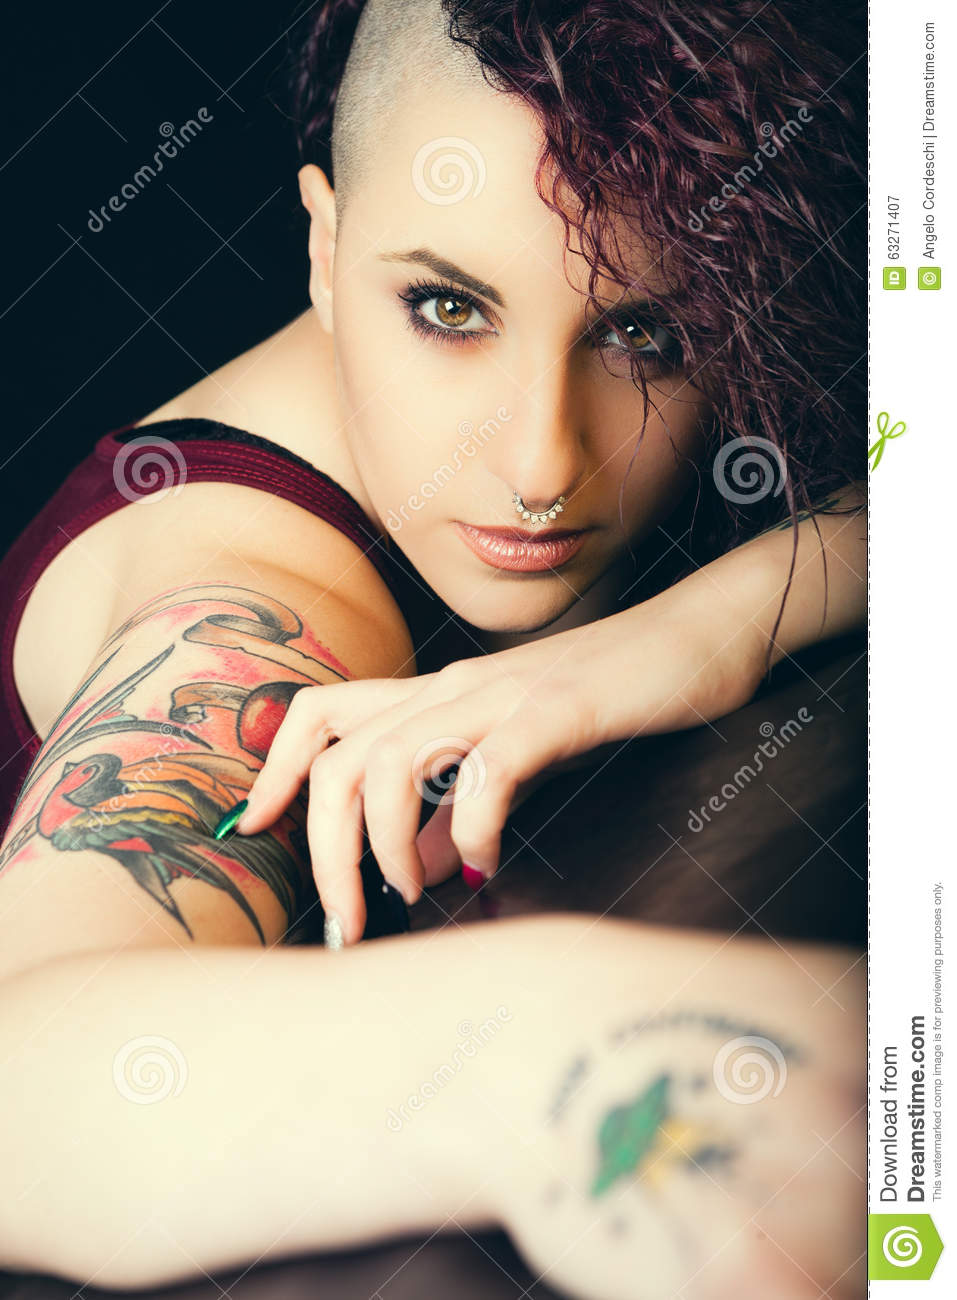 Face makeup and tattoos punk girl make up hair shaved for Clean rock one tattoos